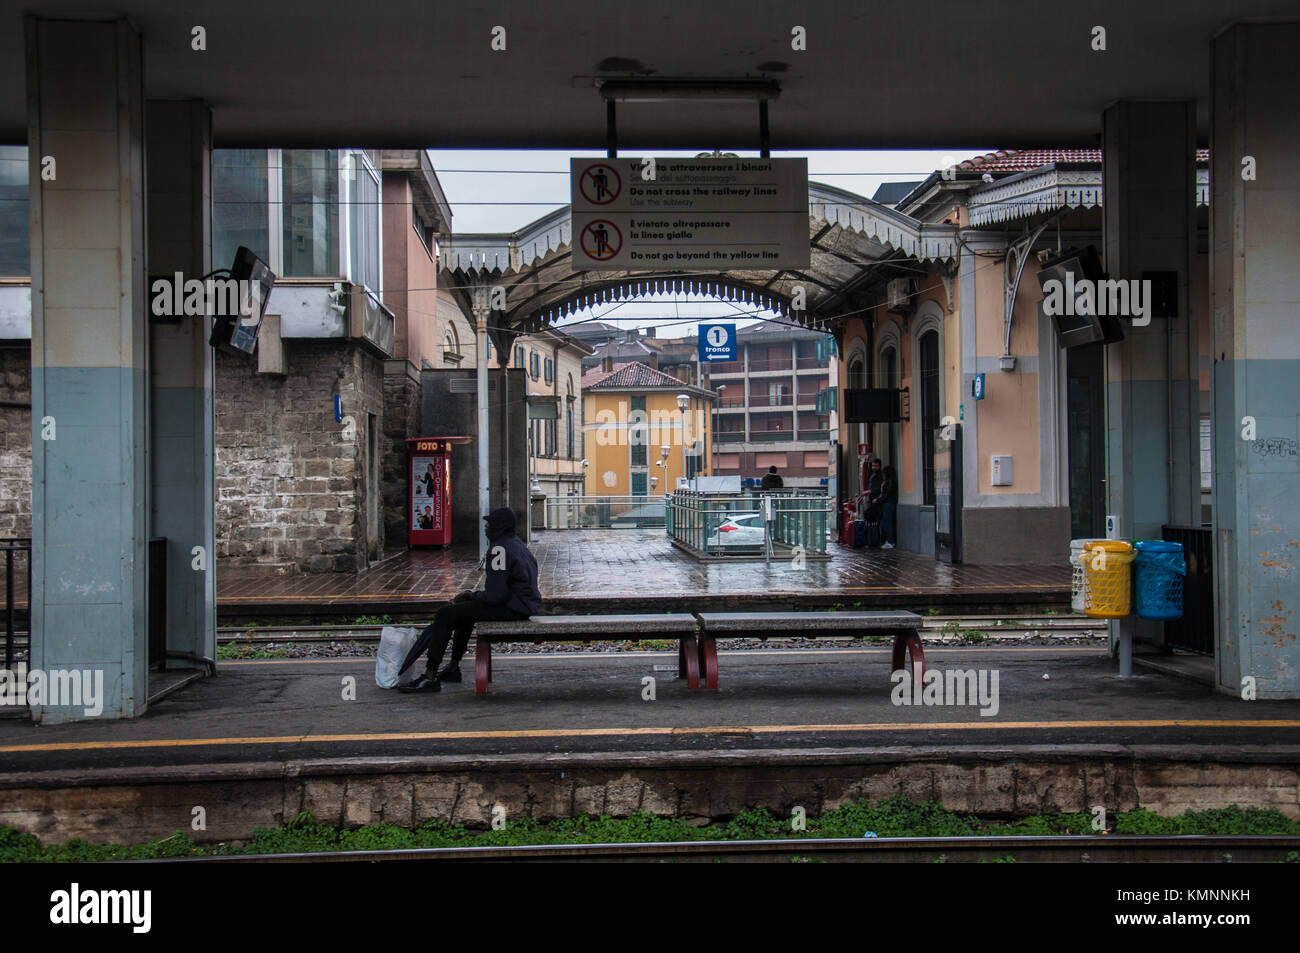 train station of Lecco Lombardy Italy - Stock Image